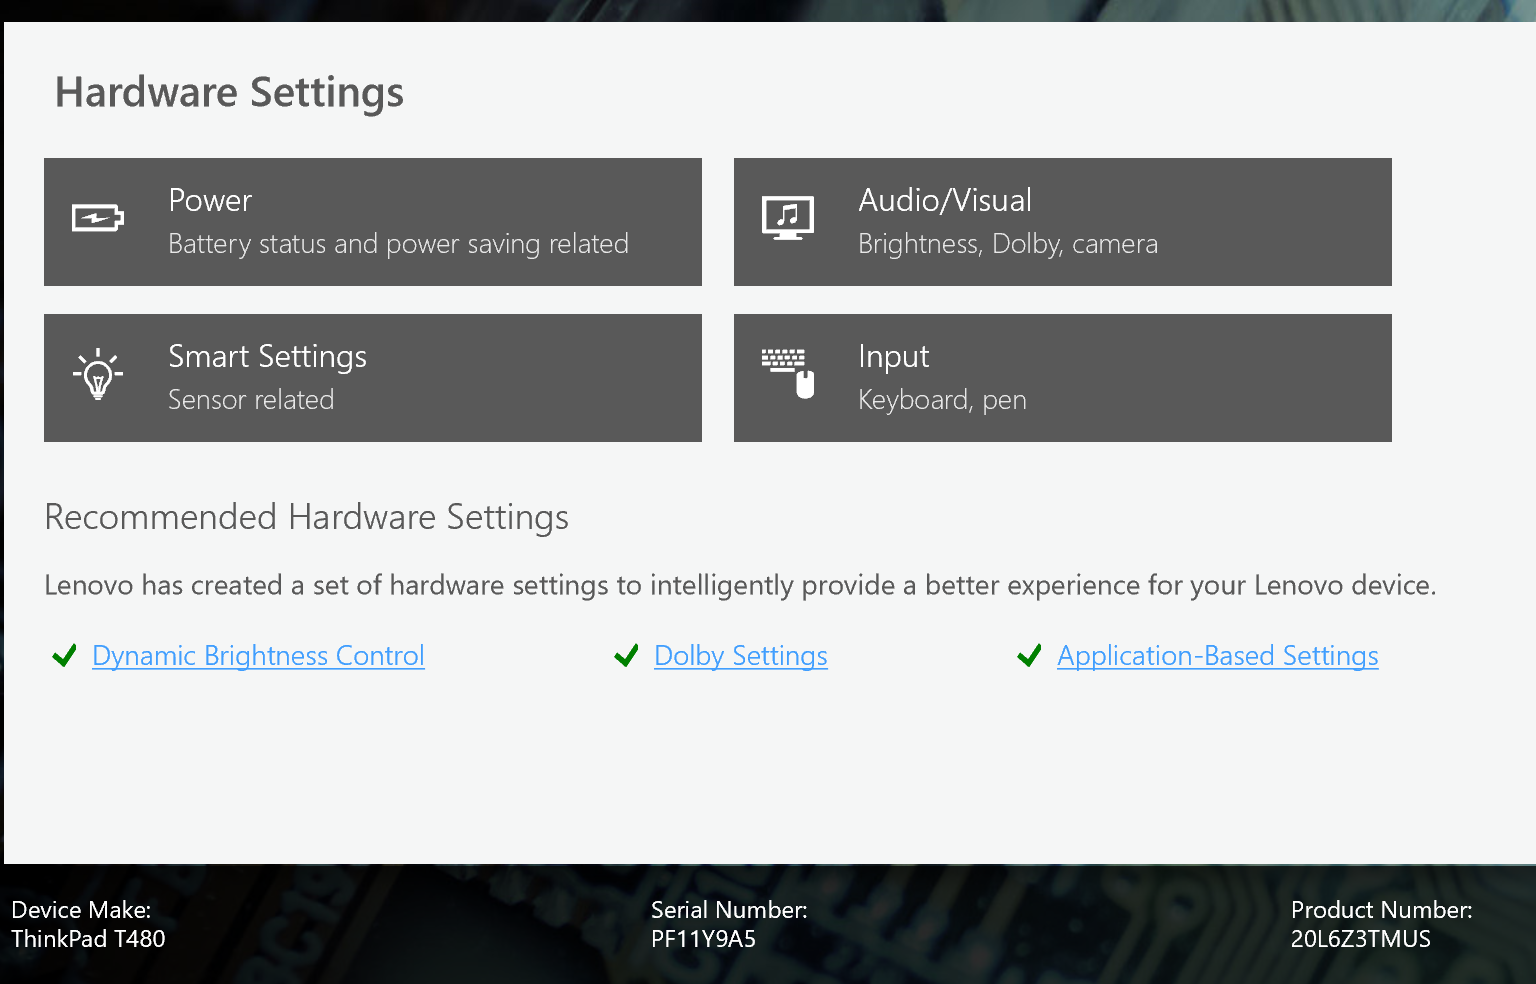 Deploying Lenovo Settings For Enterprise With Intune